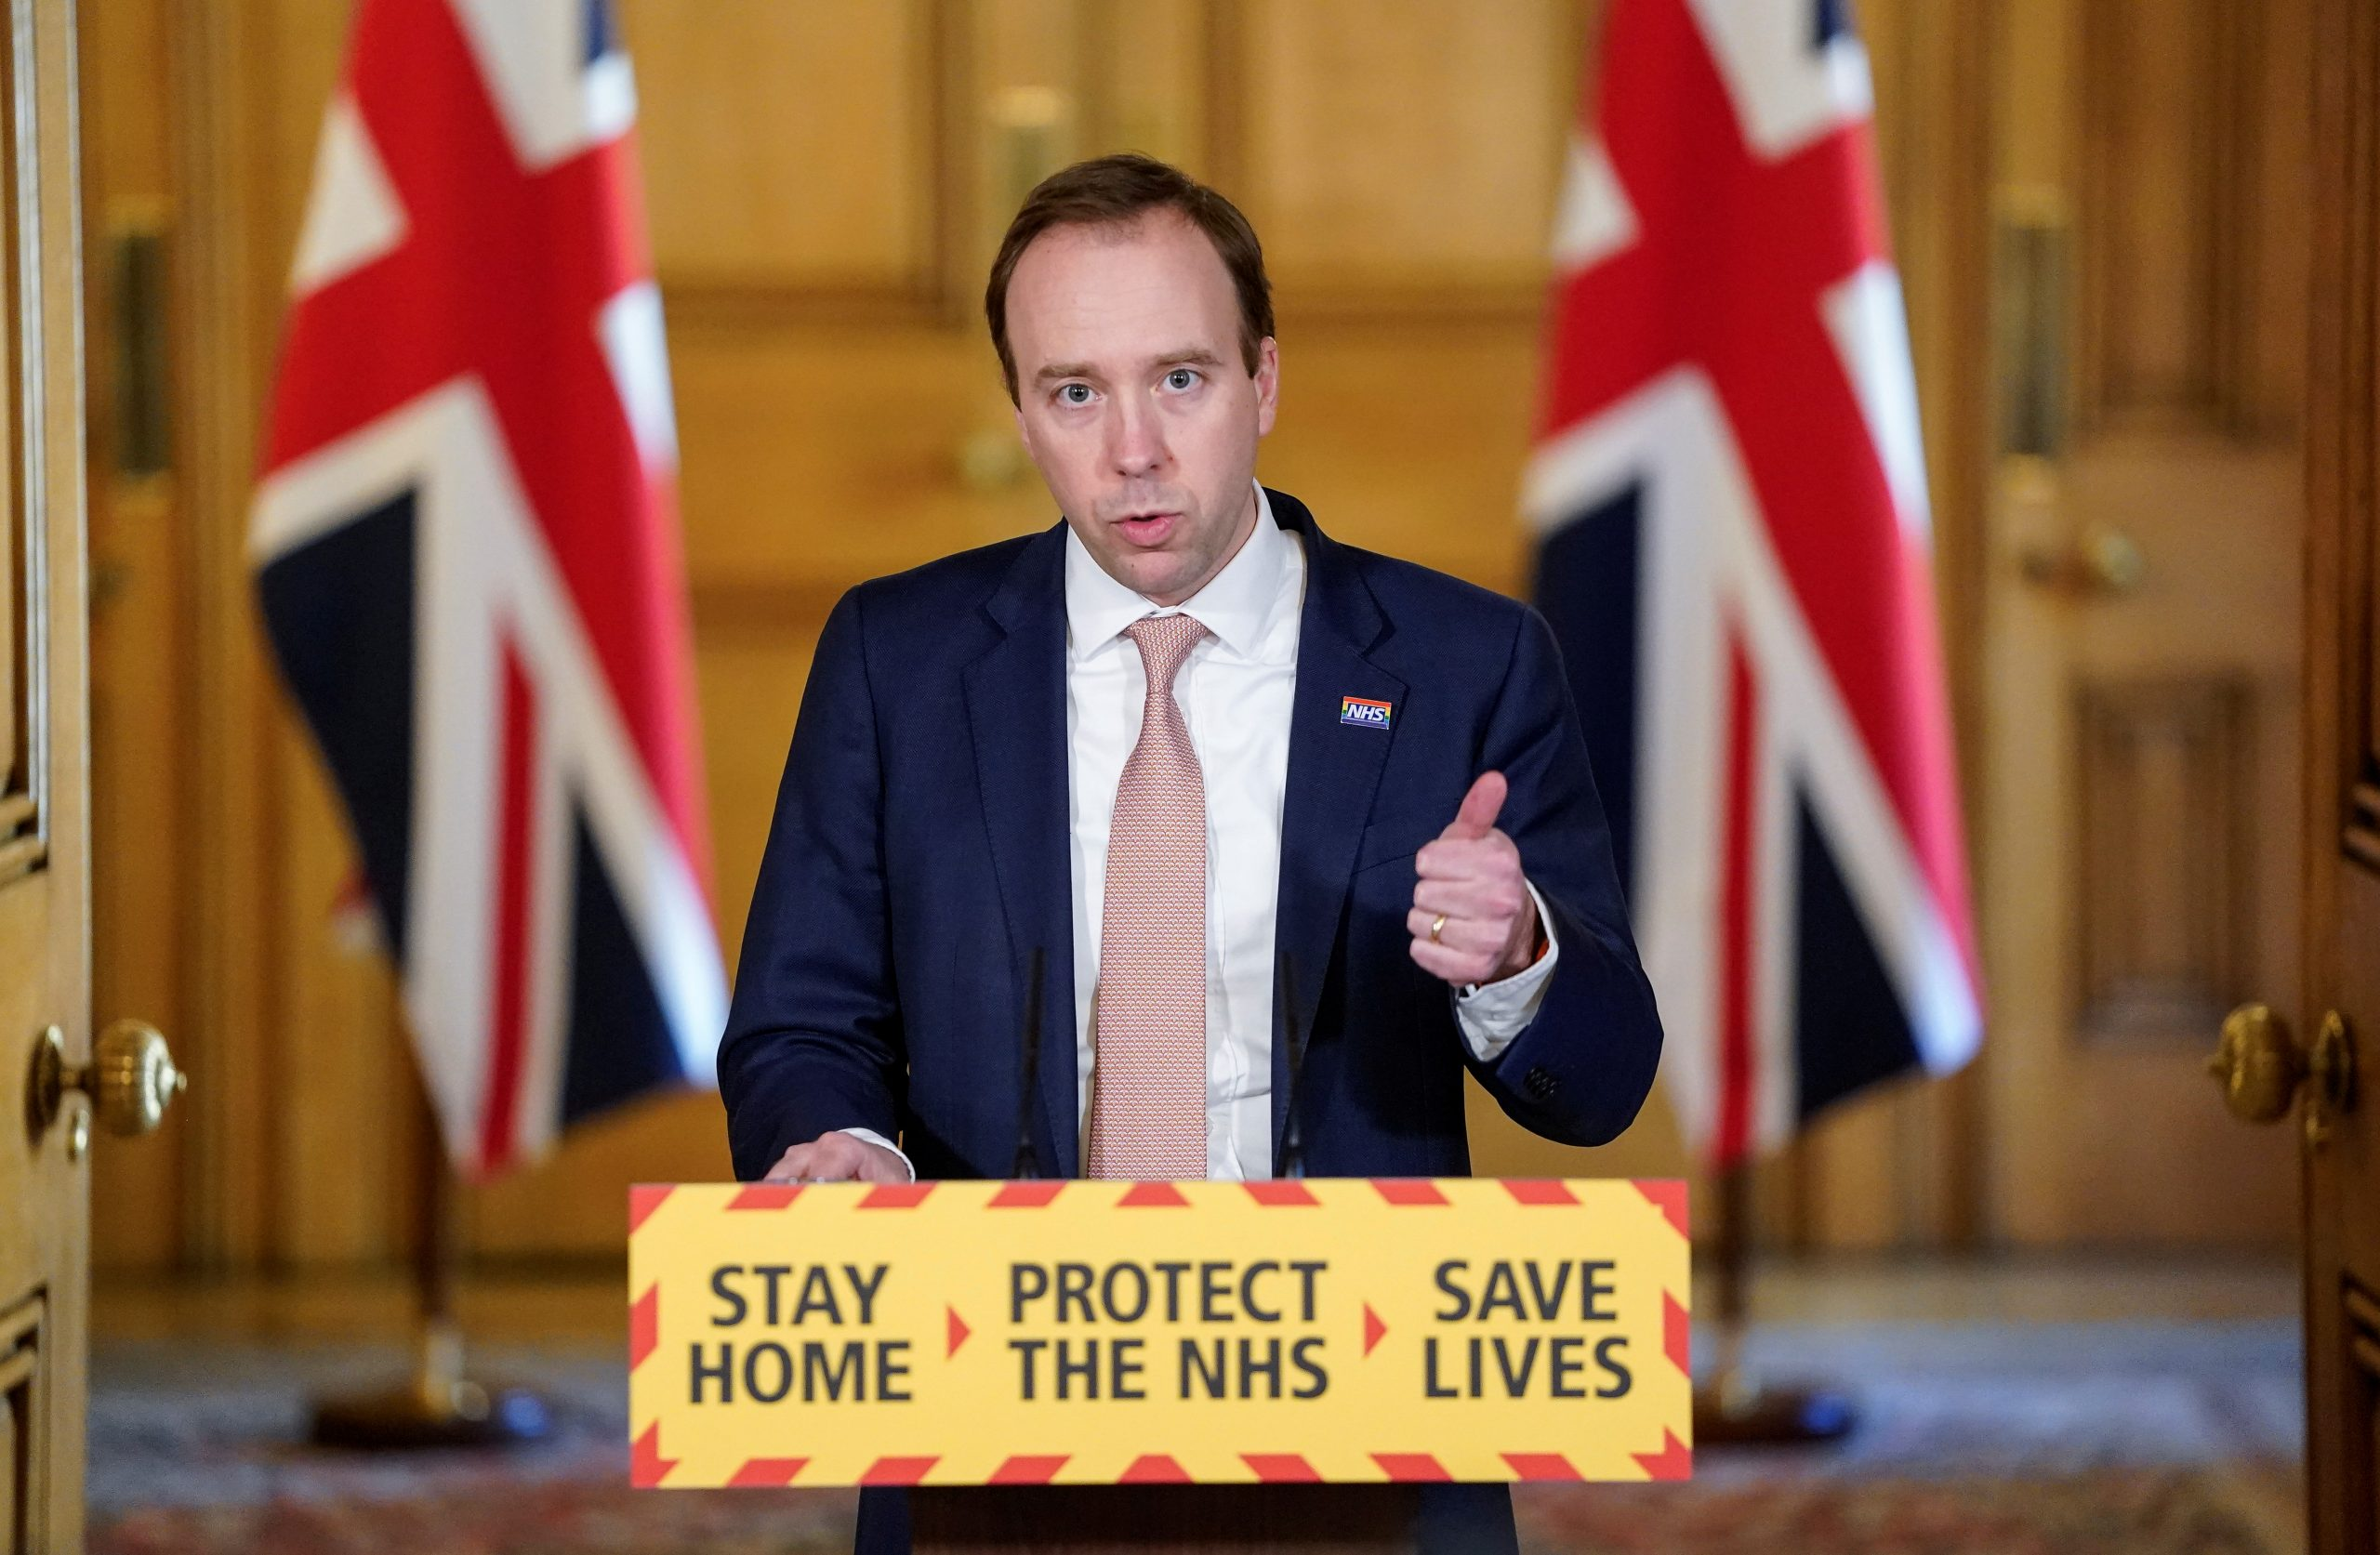 Britain's Health Secretary Matt Hancock speaks during a daily digital news conference on the coronavirus disease (COVID-19) outbreak, at 10 Downing Street.